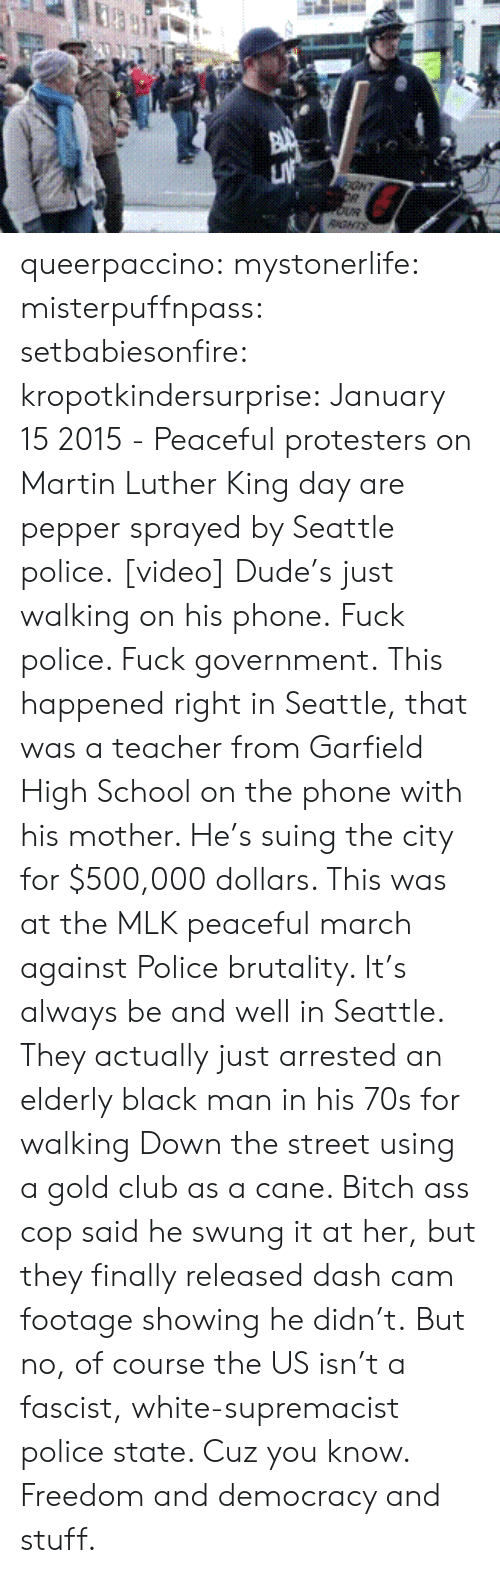 Club, Dude, and Martin: GHT  RGNTS queerpaccino: mystonerlife:  misterpuffnpass:  setbabiesonfire:  kropotkindersurprise: January 152015 - Peaceful protesters on Martin Luther King day are pepper sprayed by Seattle police.[video] Dude's just walking on his phone.  Fuck police. Fuck government.  This happened right in Seattle, that was a teacher from Garfield High School on the phone with his mother. He's suing the city for $500,000 dollars. This was at the MLK peaceful march against Police brutality. It's always be and well in Seattle. They actually just arrested an elderly black man in his 70s for walking Down the street using a gold club as a cane. Bitch ass cop said he swung it at her, but they finally released dash cam footage showing he didn't.  But no, of course the US isn't a fascist, white-supremacist police state. Cuz you know. Freedom and democracy and stuff.